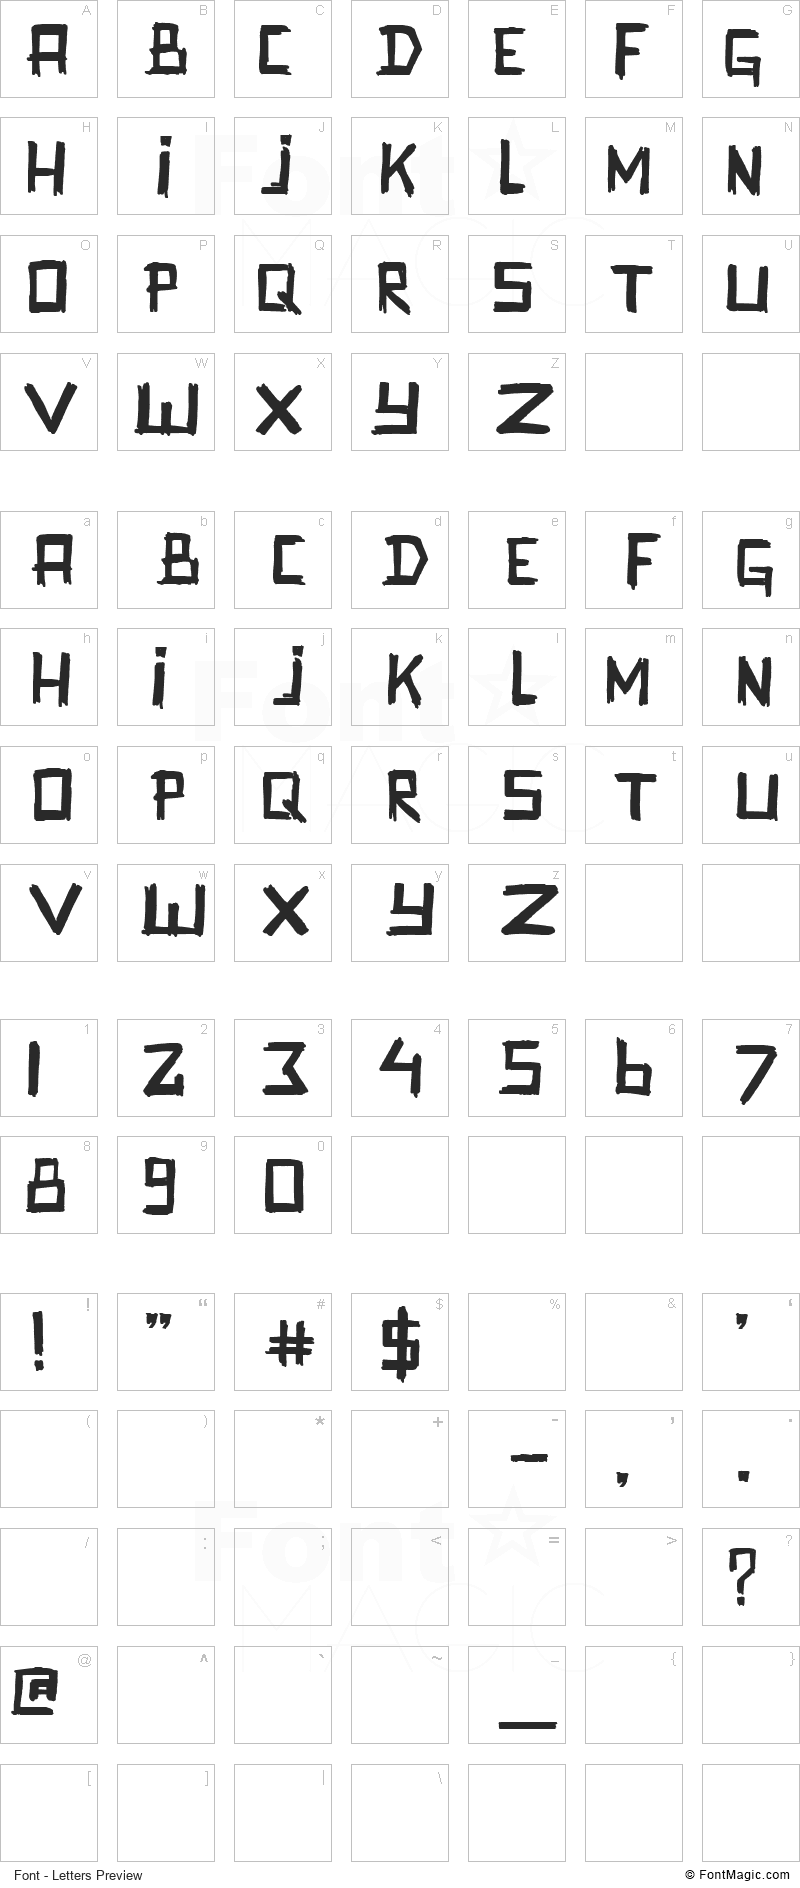 Promenadenmischung Font - All Latters Preview Chart